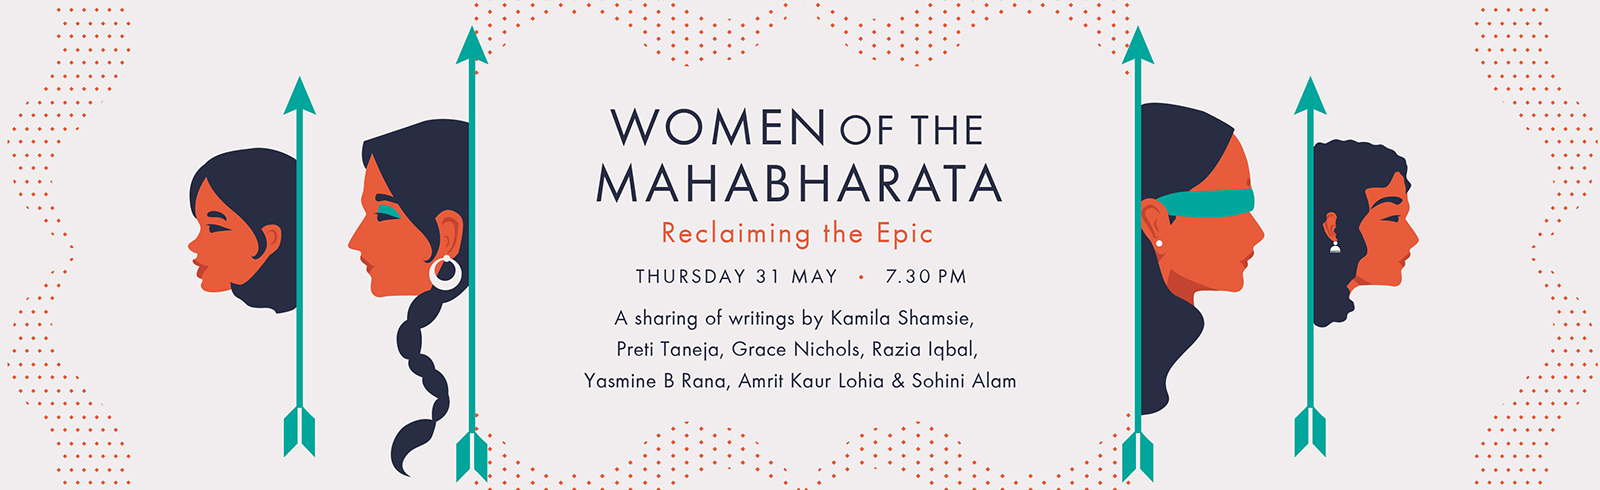 Women of the Mahabharata livestream Thurs 31 May 7.30pm